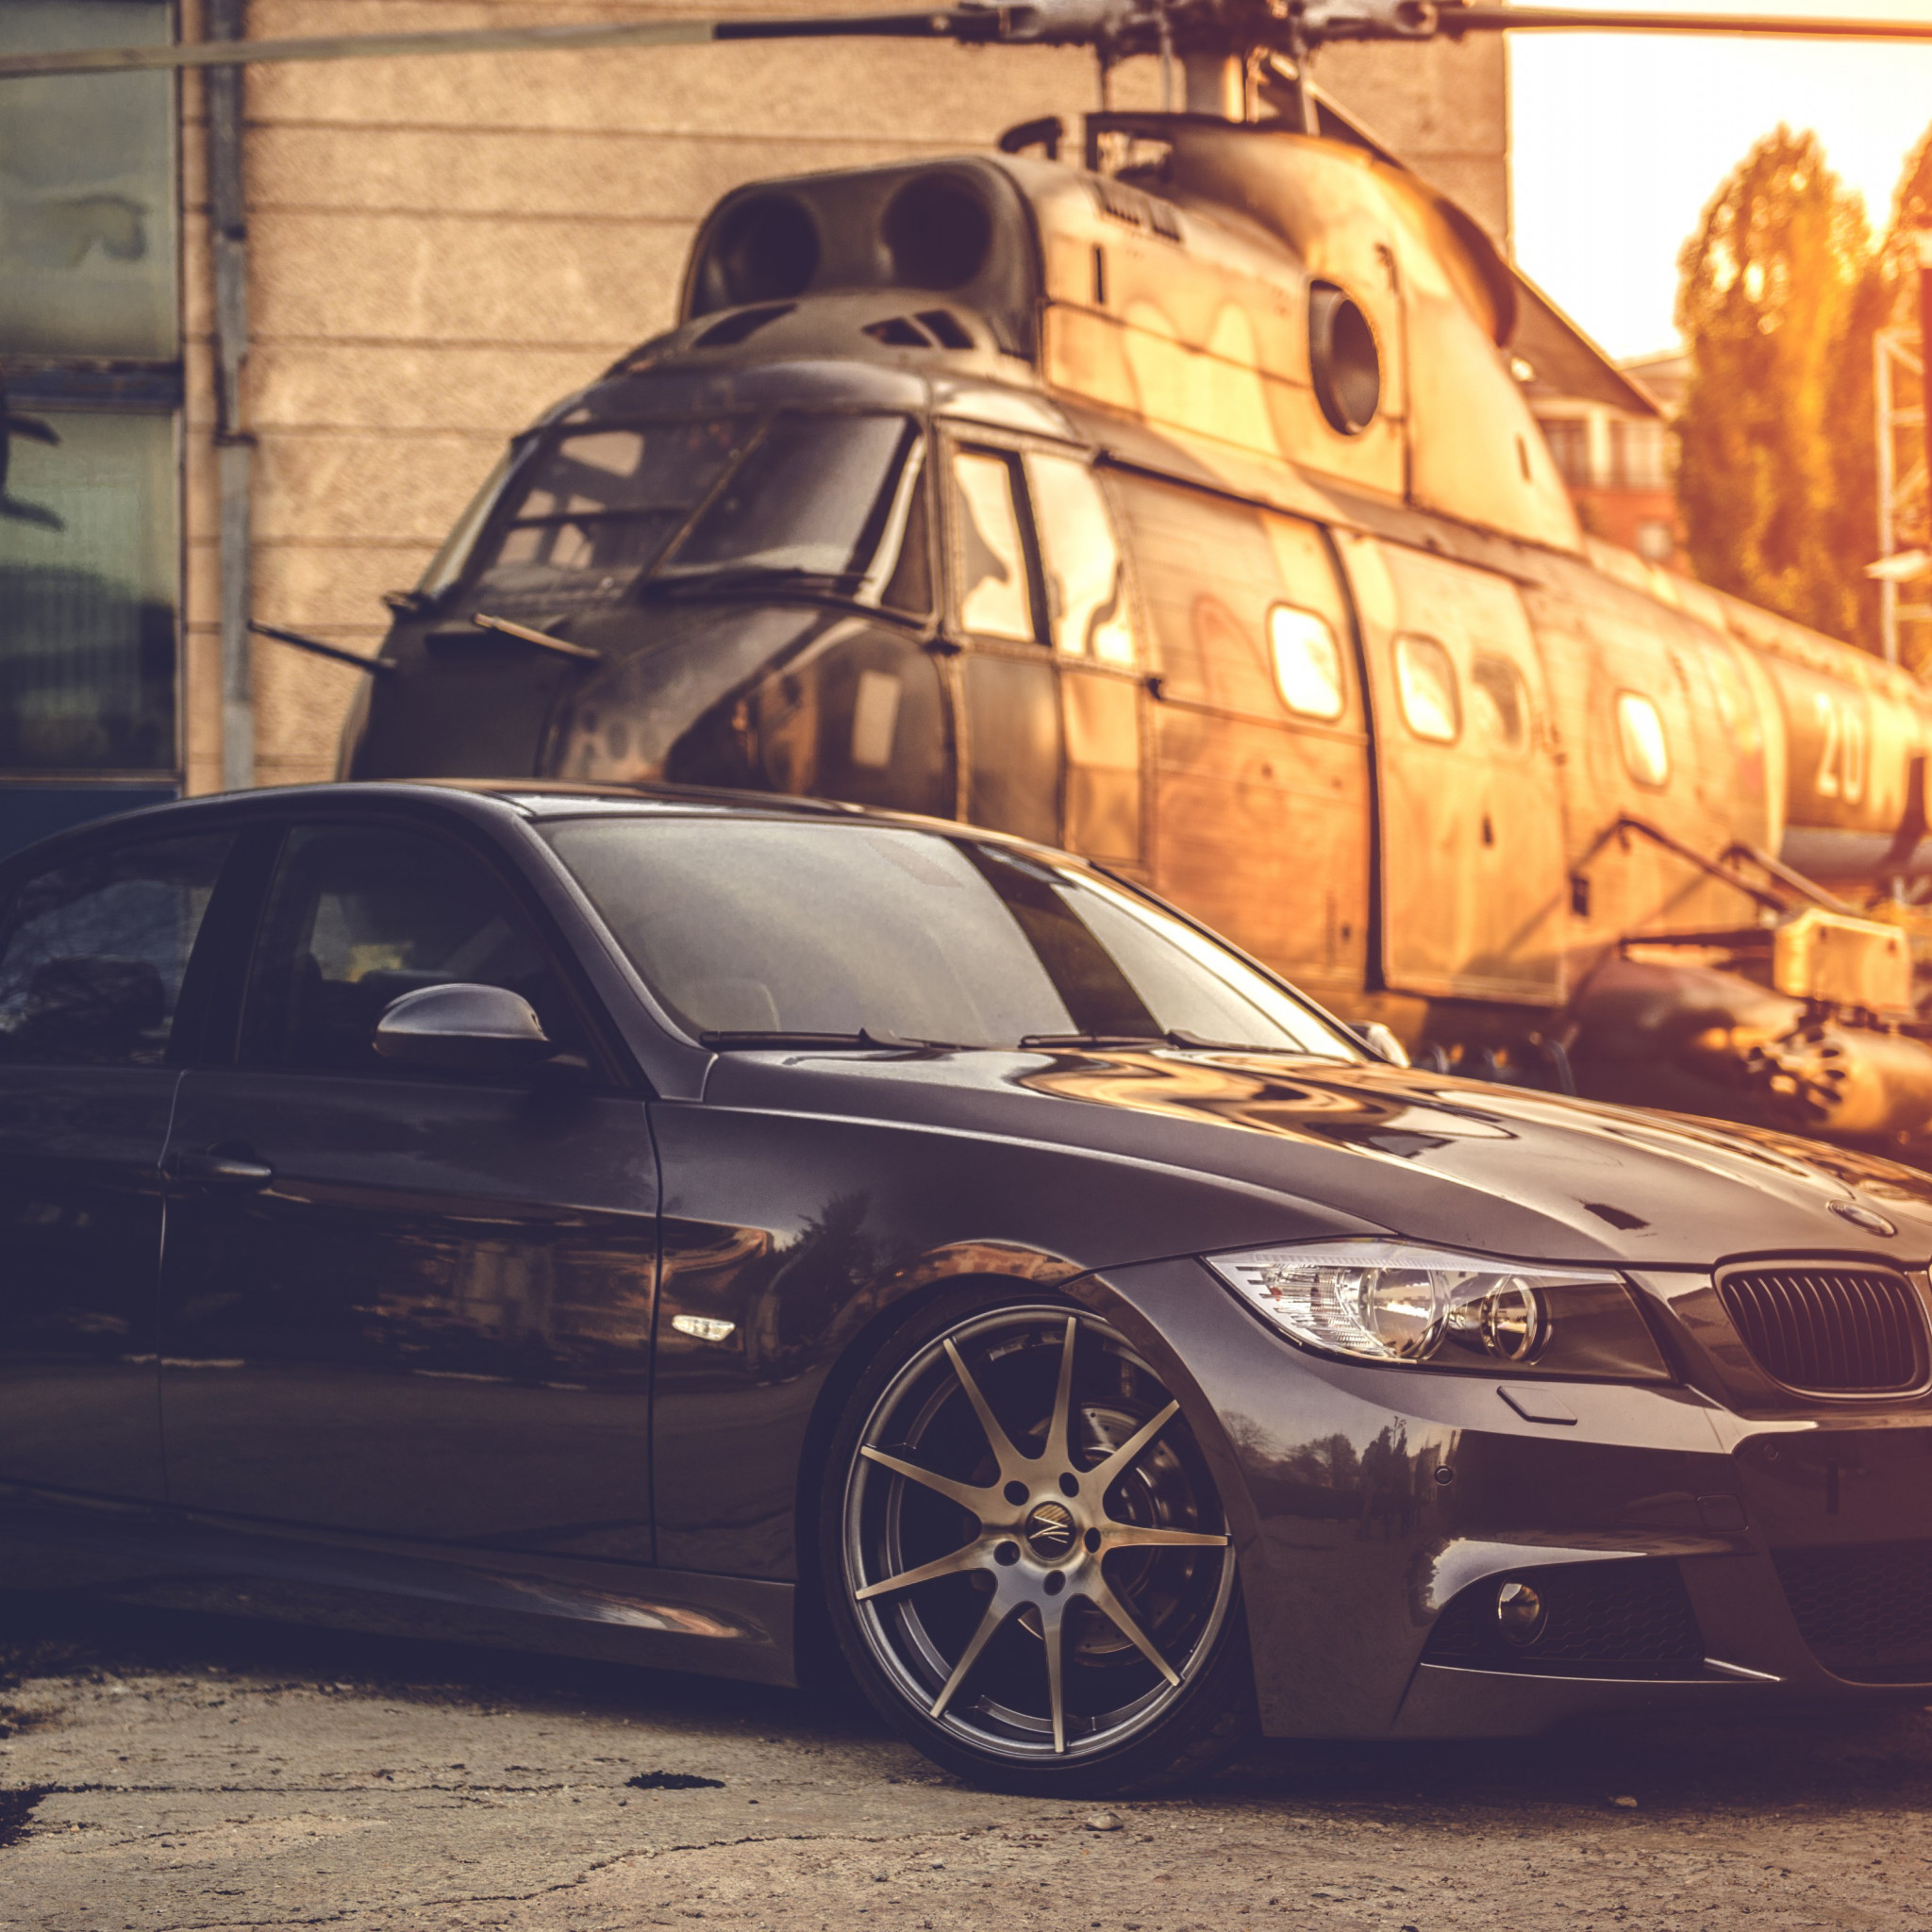 BMW E90 and one helicopter wallpaper 2048x2048